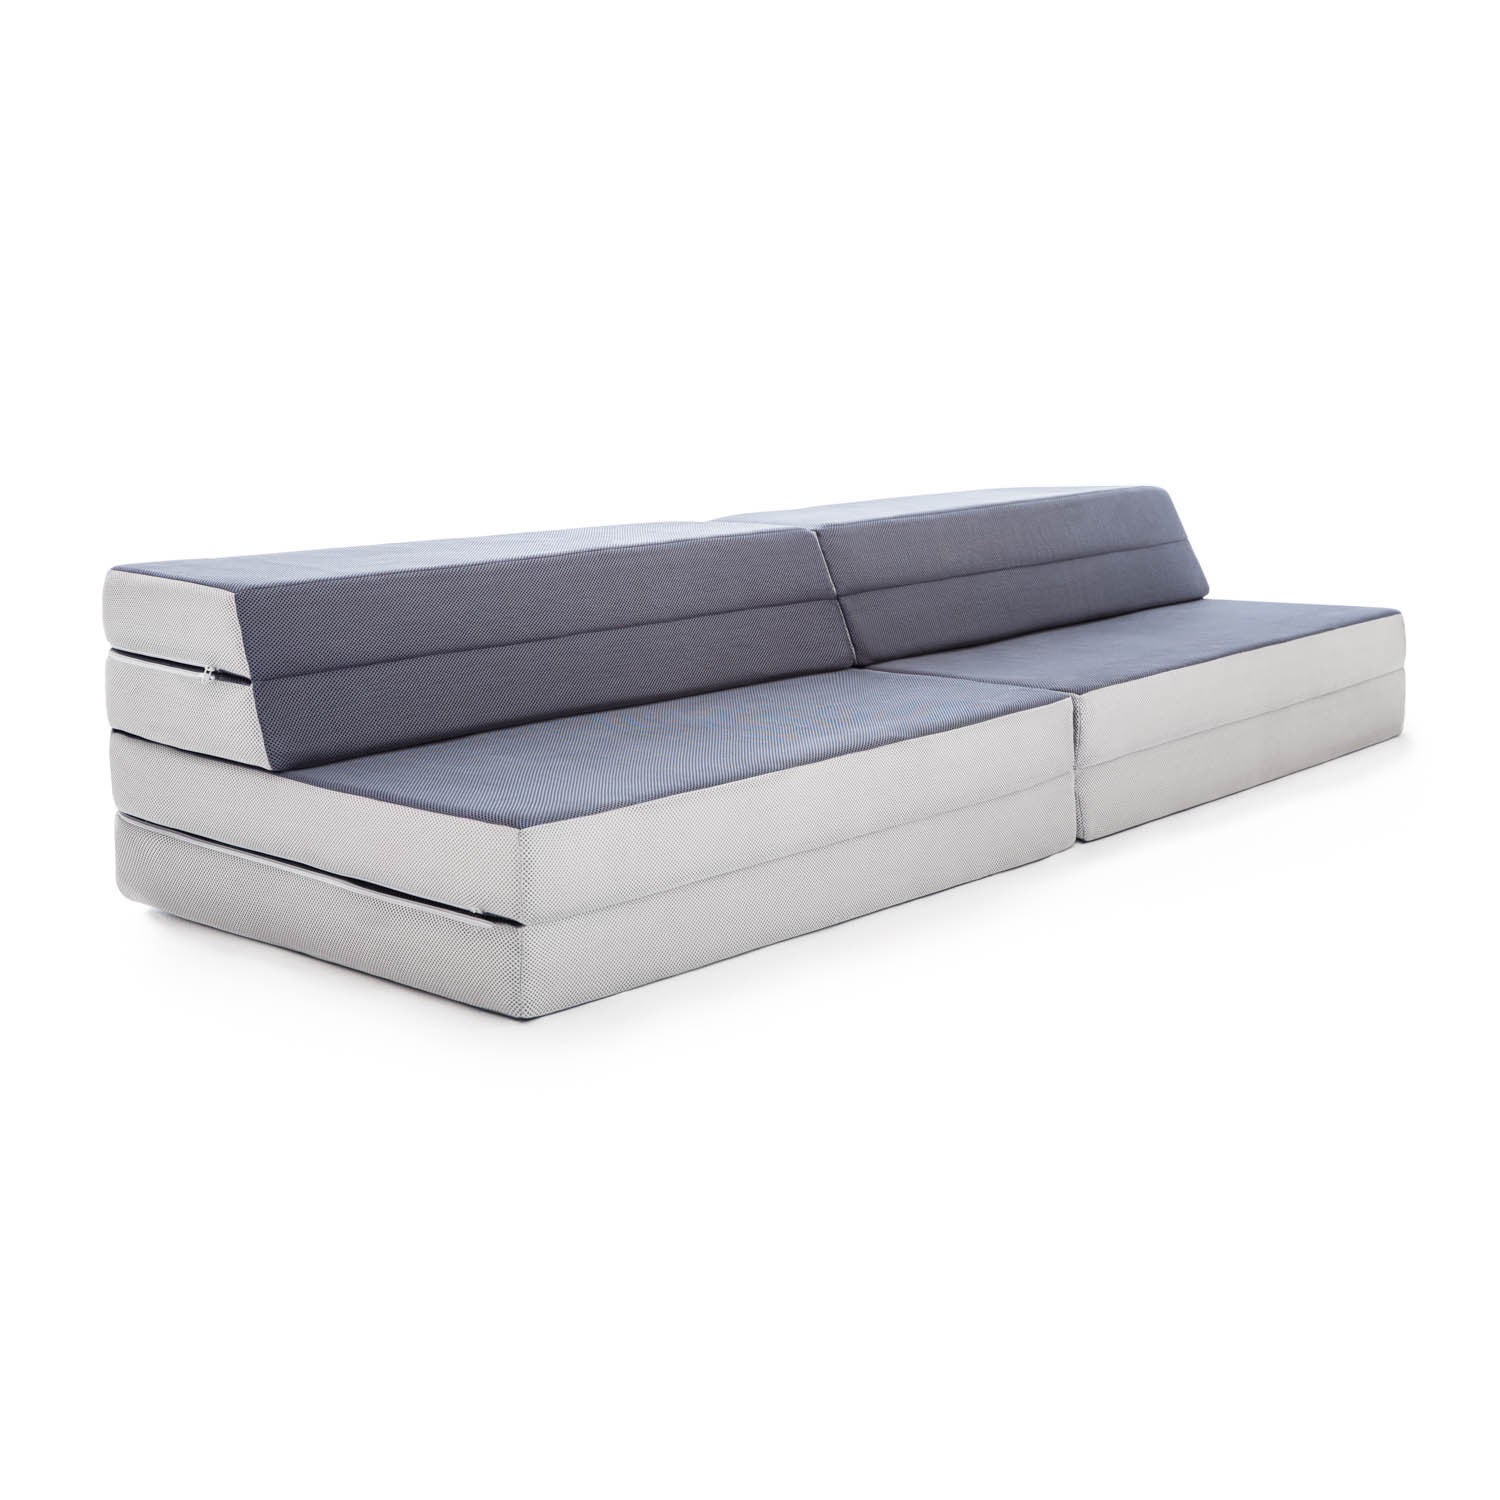 Lucid Convertible Folding Foam Sofa Bed Free Shipping Today 18343310